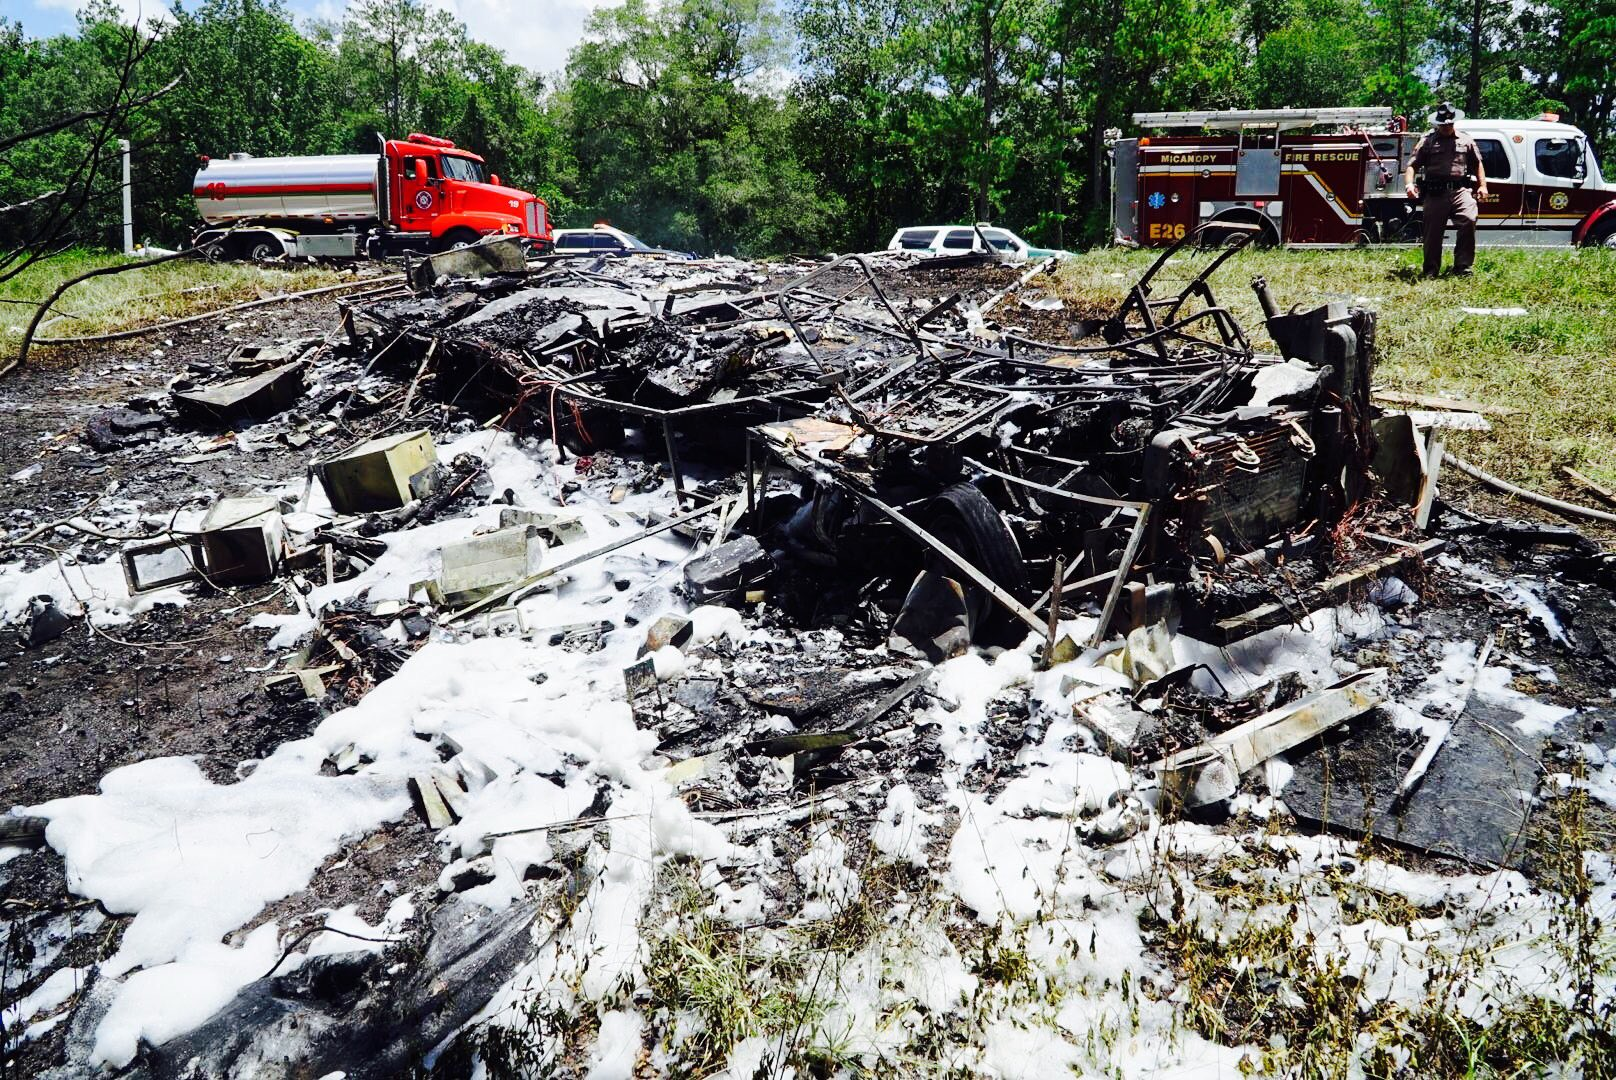 Photo from the wreck on I-75 near Micanopy on Friday, July 14. Courtesy Alachua County Sheriff's Office.